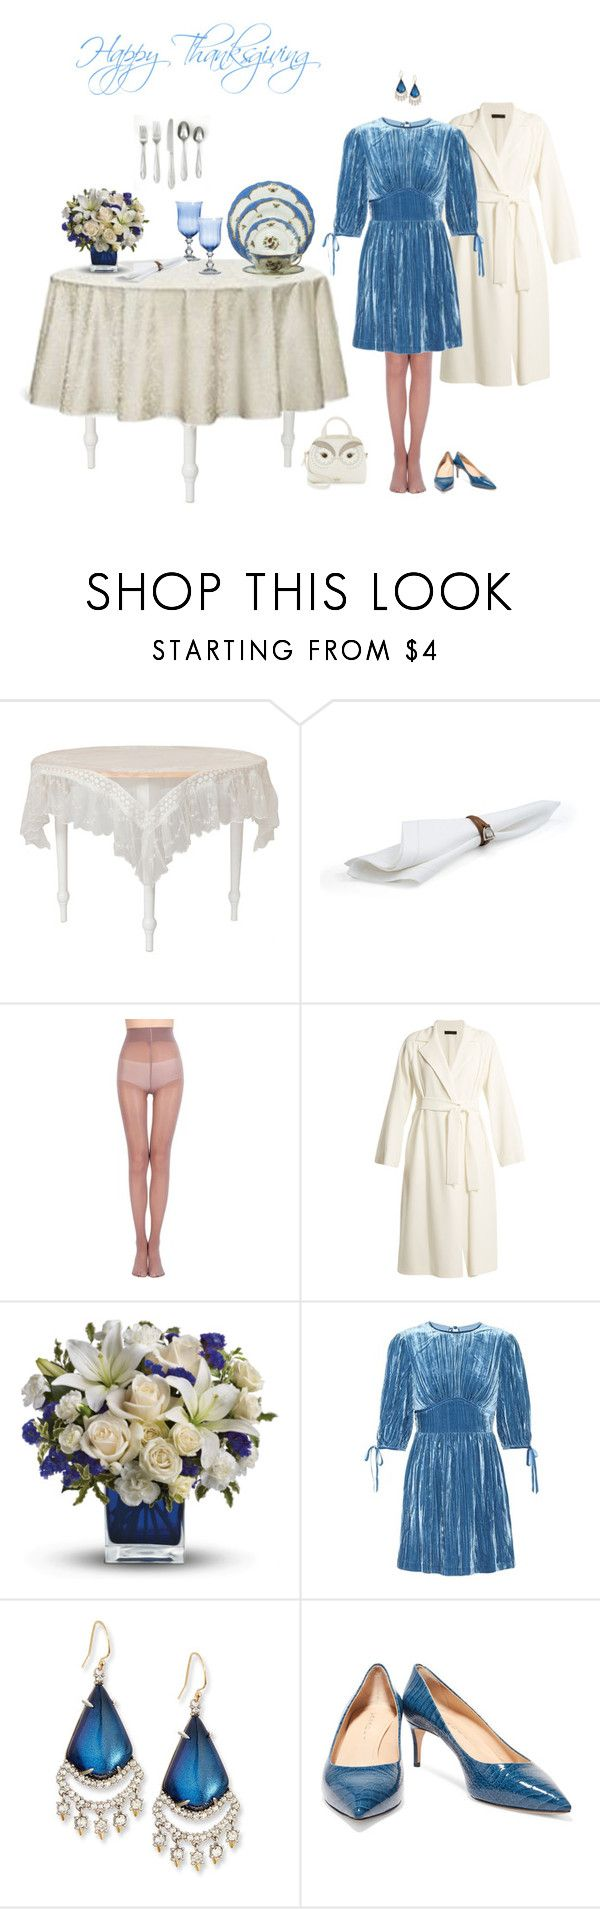 """""""Untitled #1987"""" by milliemarie ❤ liked on Polyvore featuring April Cornell, Waterford, Ralph Lauren, The Row, AlexaChung, Alexis Bittar, Casadei and Kate Spade"""